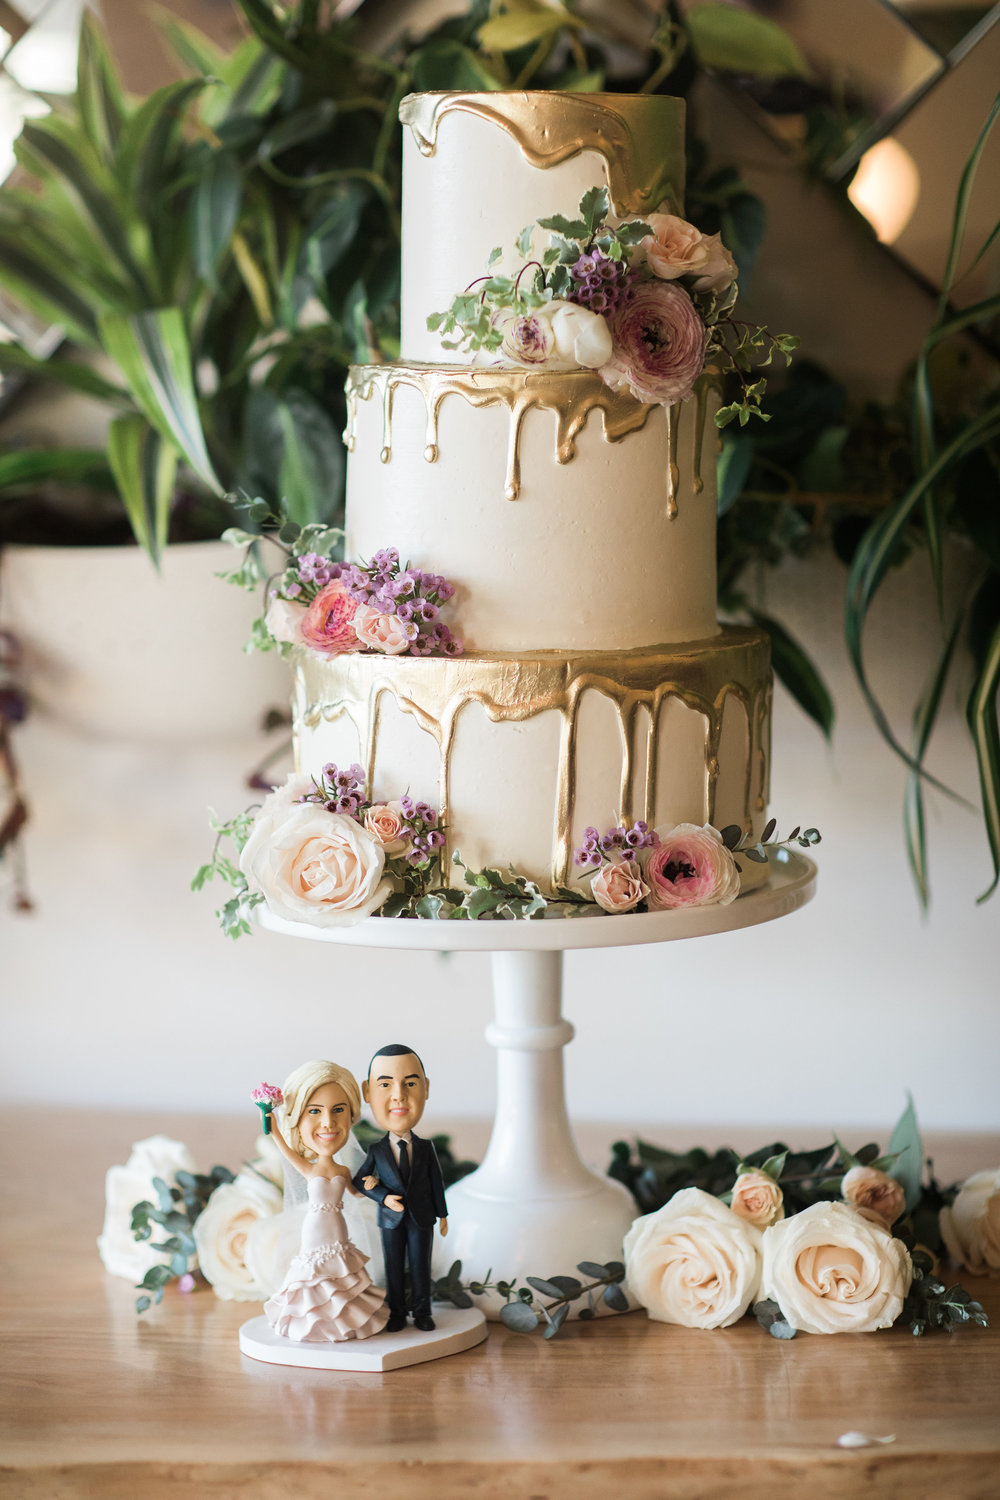 Sarah + David // Photographer:  Casey Brodley , Cake:  Nicole Bakes Cakes , EFW Floral Design